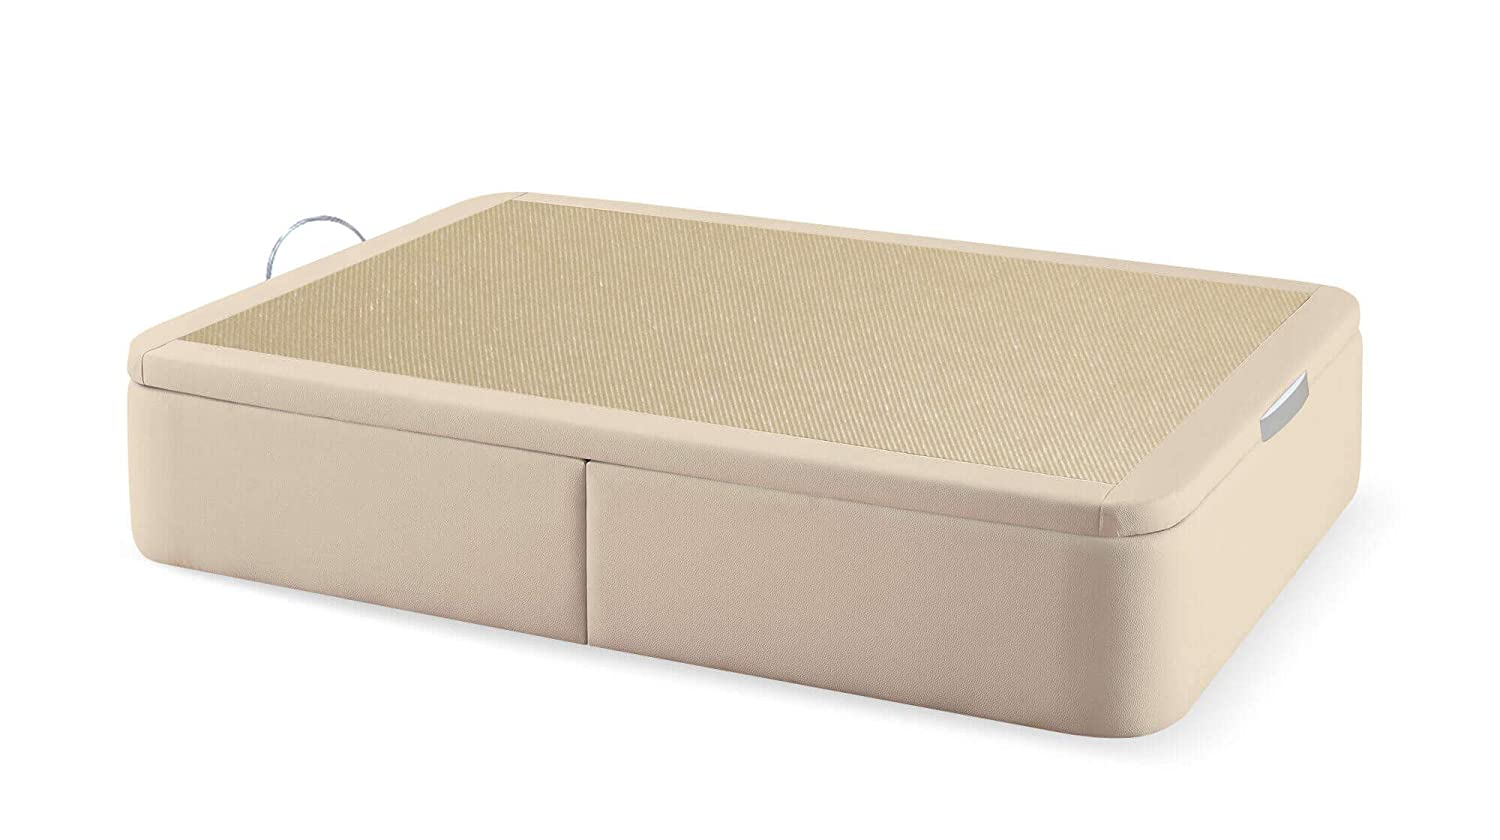 Naturconfort Canapé abatible Beige. DISPONIBLE EN TODAS LAS MEDIDAS (90 x 190 cm): Amazon.es: Hogar